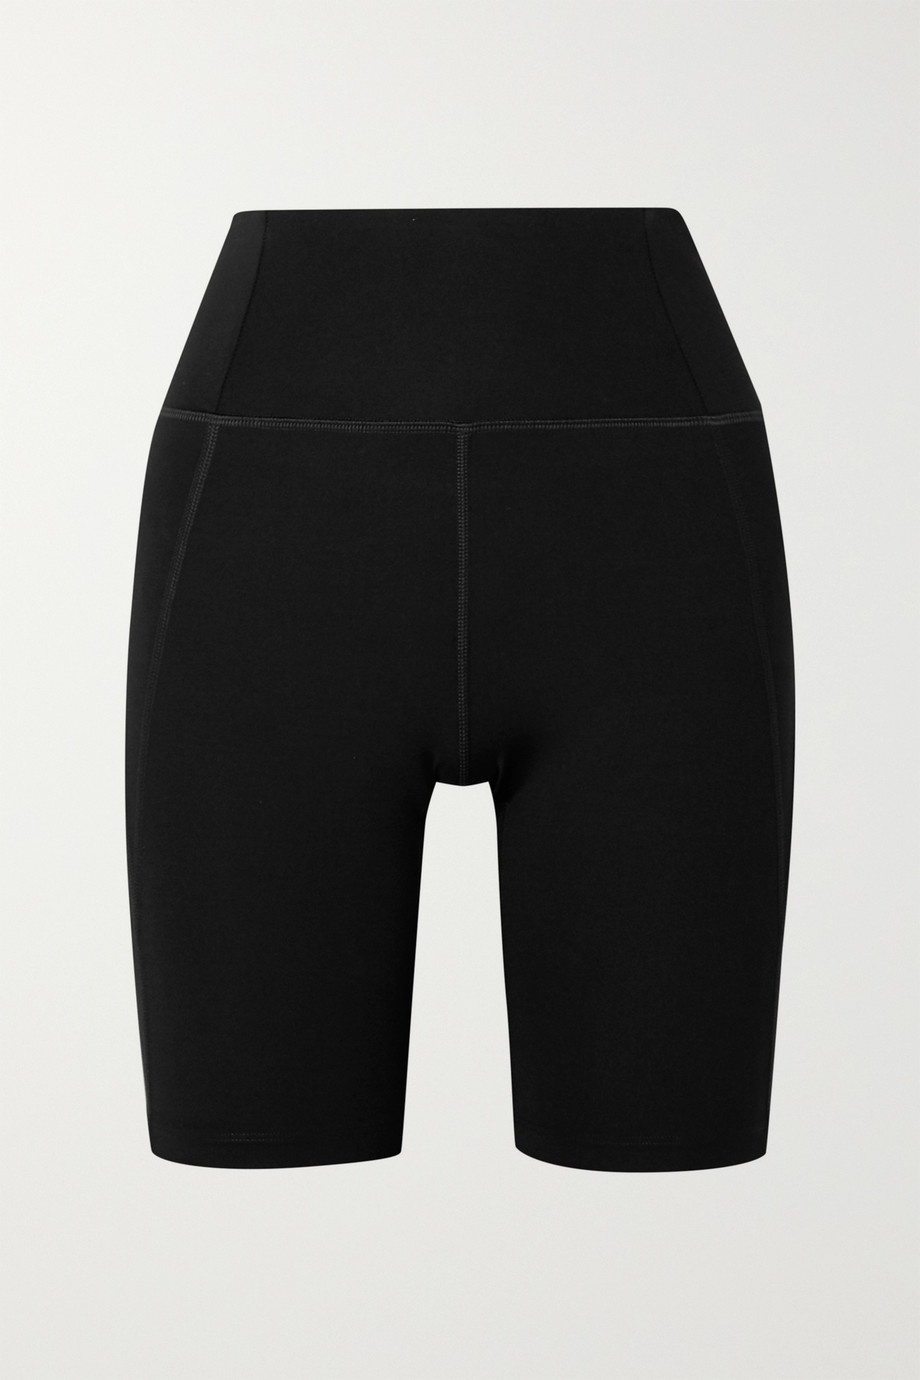 Girlfriend Collective Bike stretch shorts